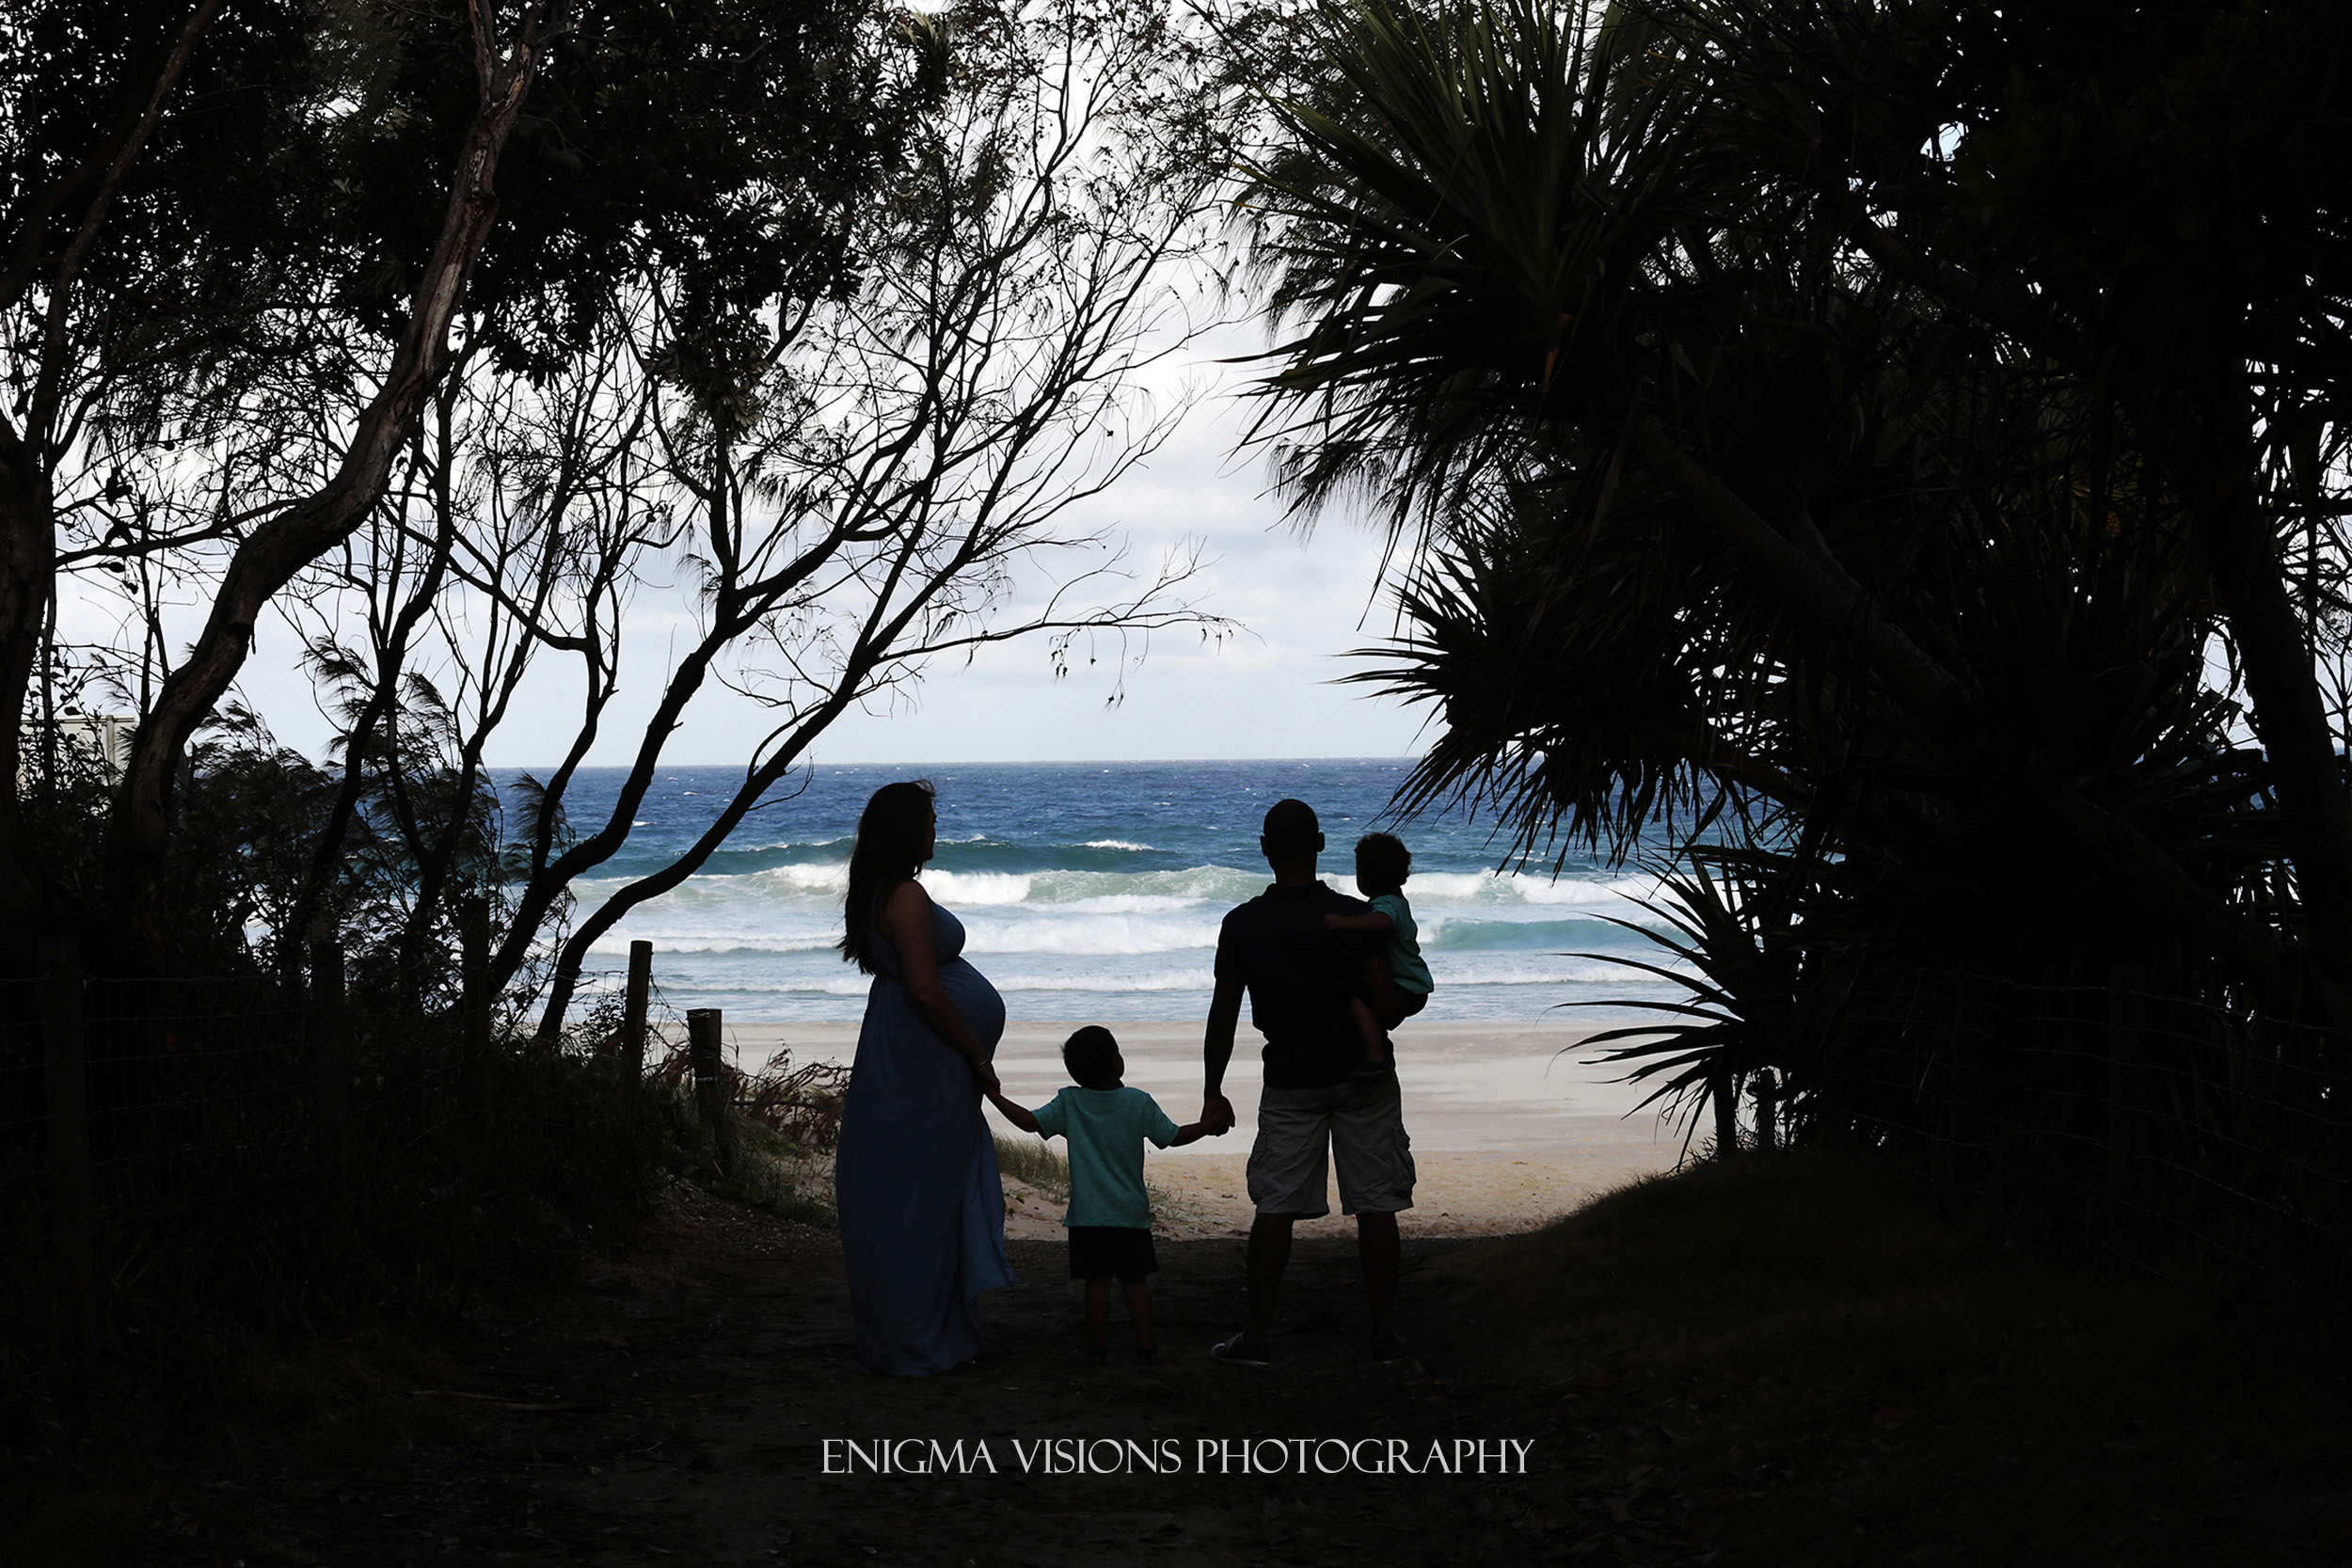 enigma_visions_photography_maternity_stef_fingal (2).jpg